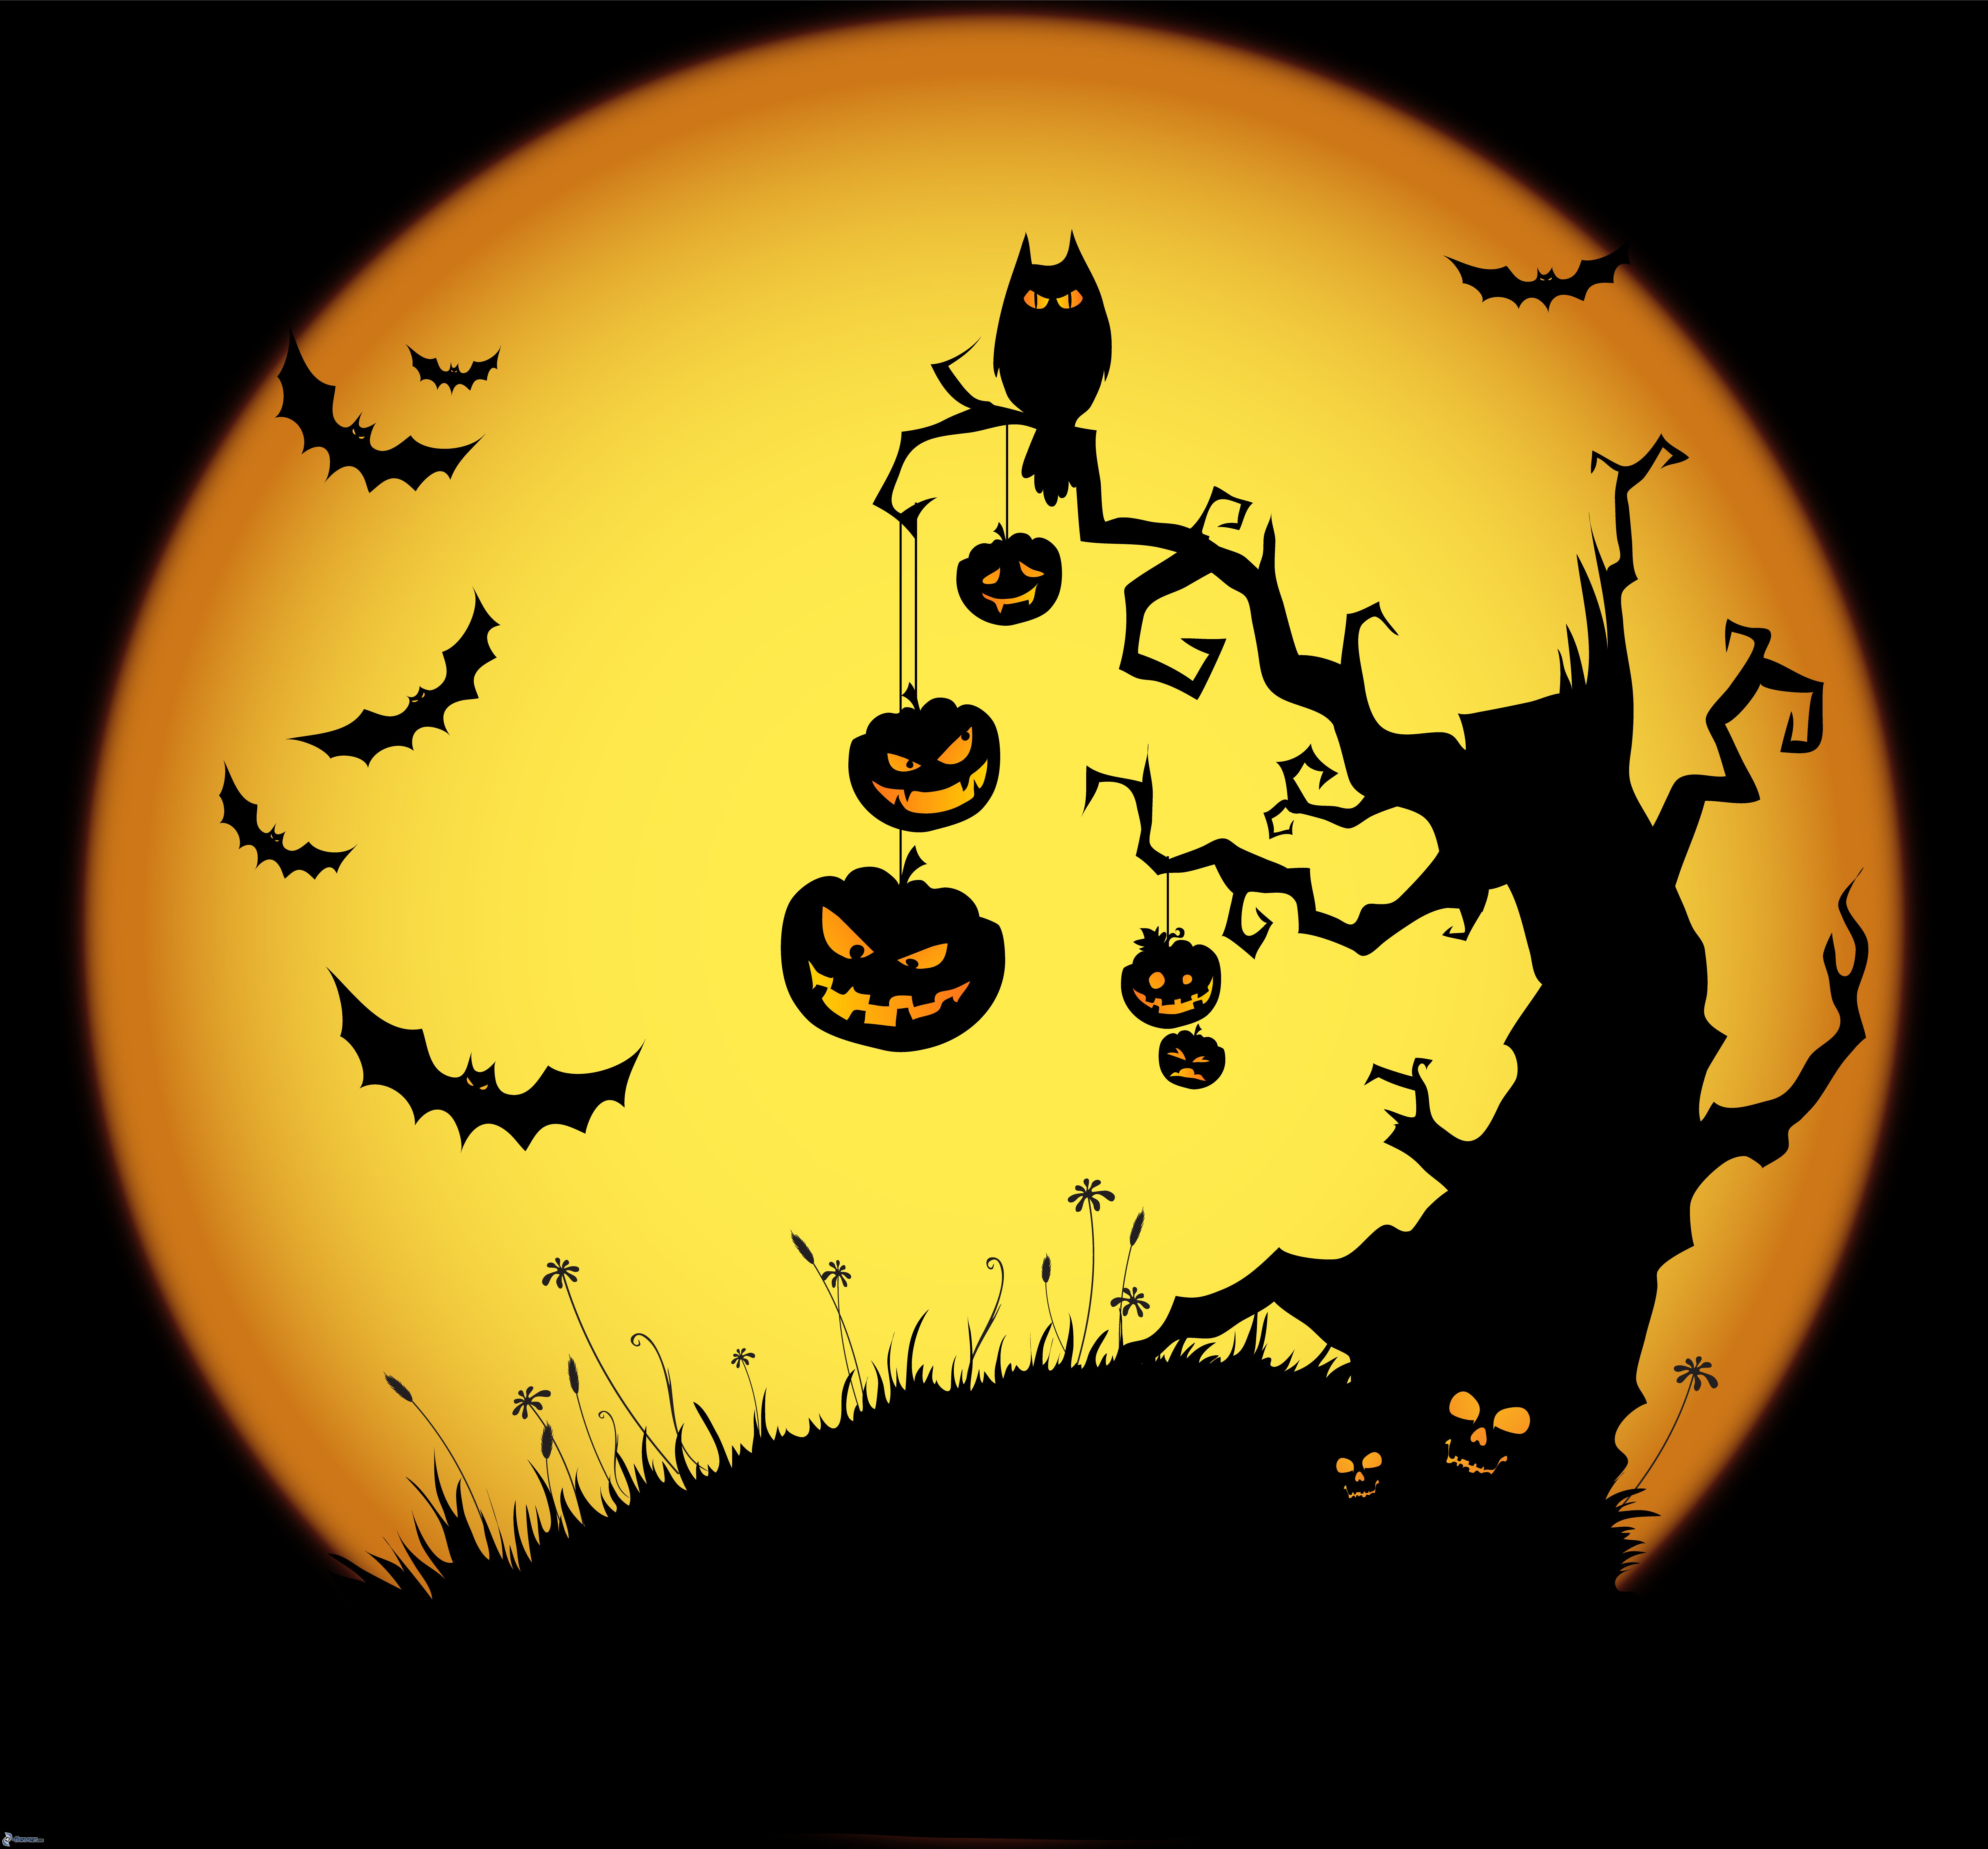 Amazing Halloween Pictures & Backgrounds